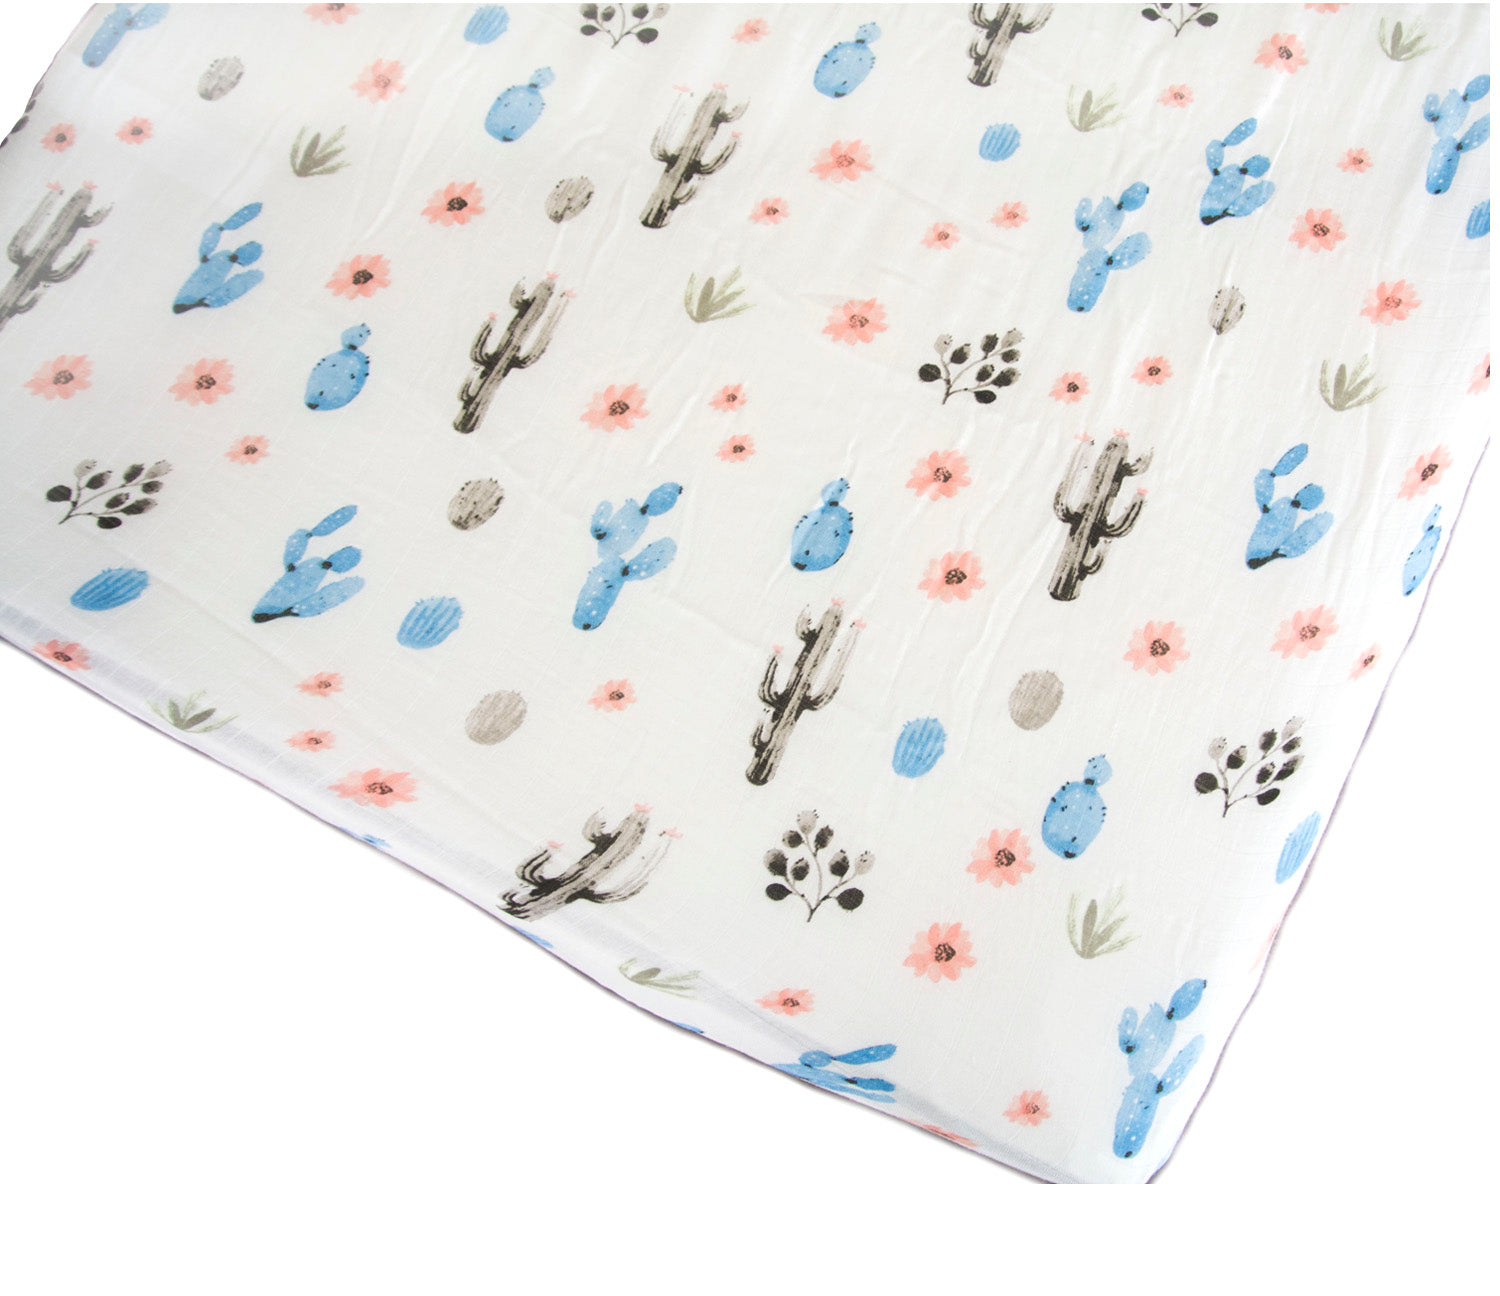 Loulou Lollipop Bamboo Muslin Fitted Crib Sheet - Cactus Floral